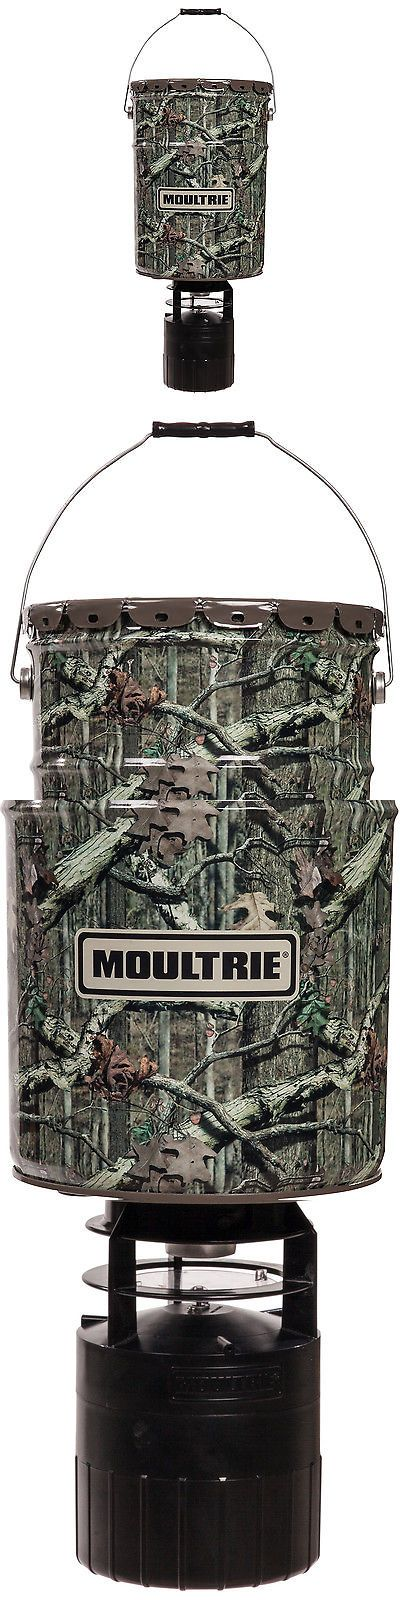 Game Feeders and Feed 52504: Moultrie 6.5 Gallon 360° Pro-Hunter Bucket Style Hanging Deer Feeder With Timer BUY IT NOW ONLY: $62.64